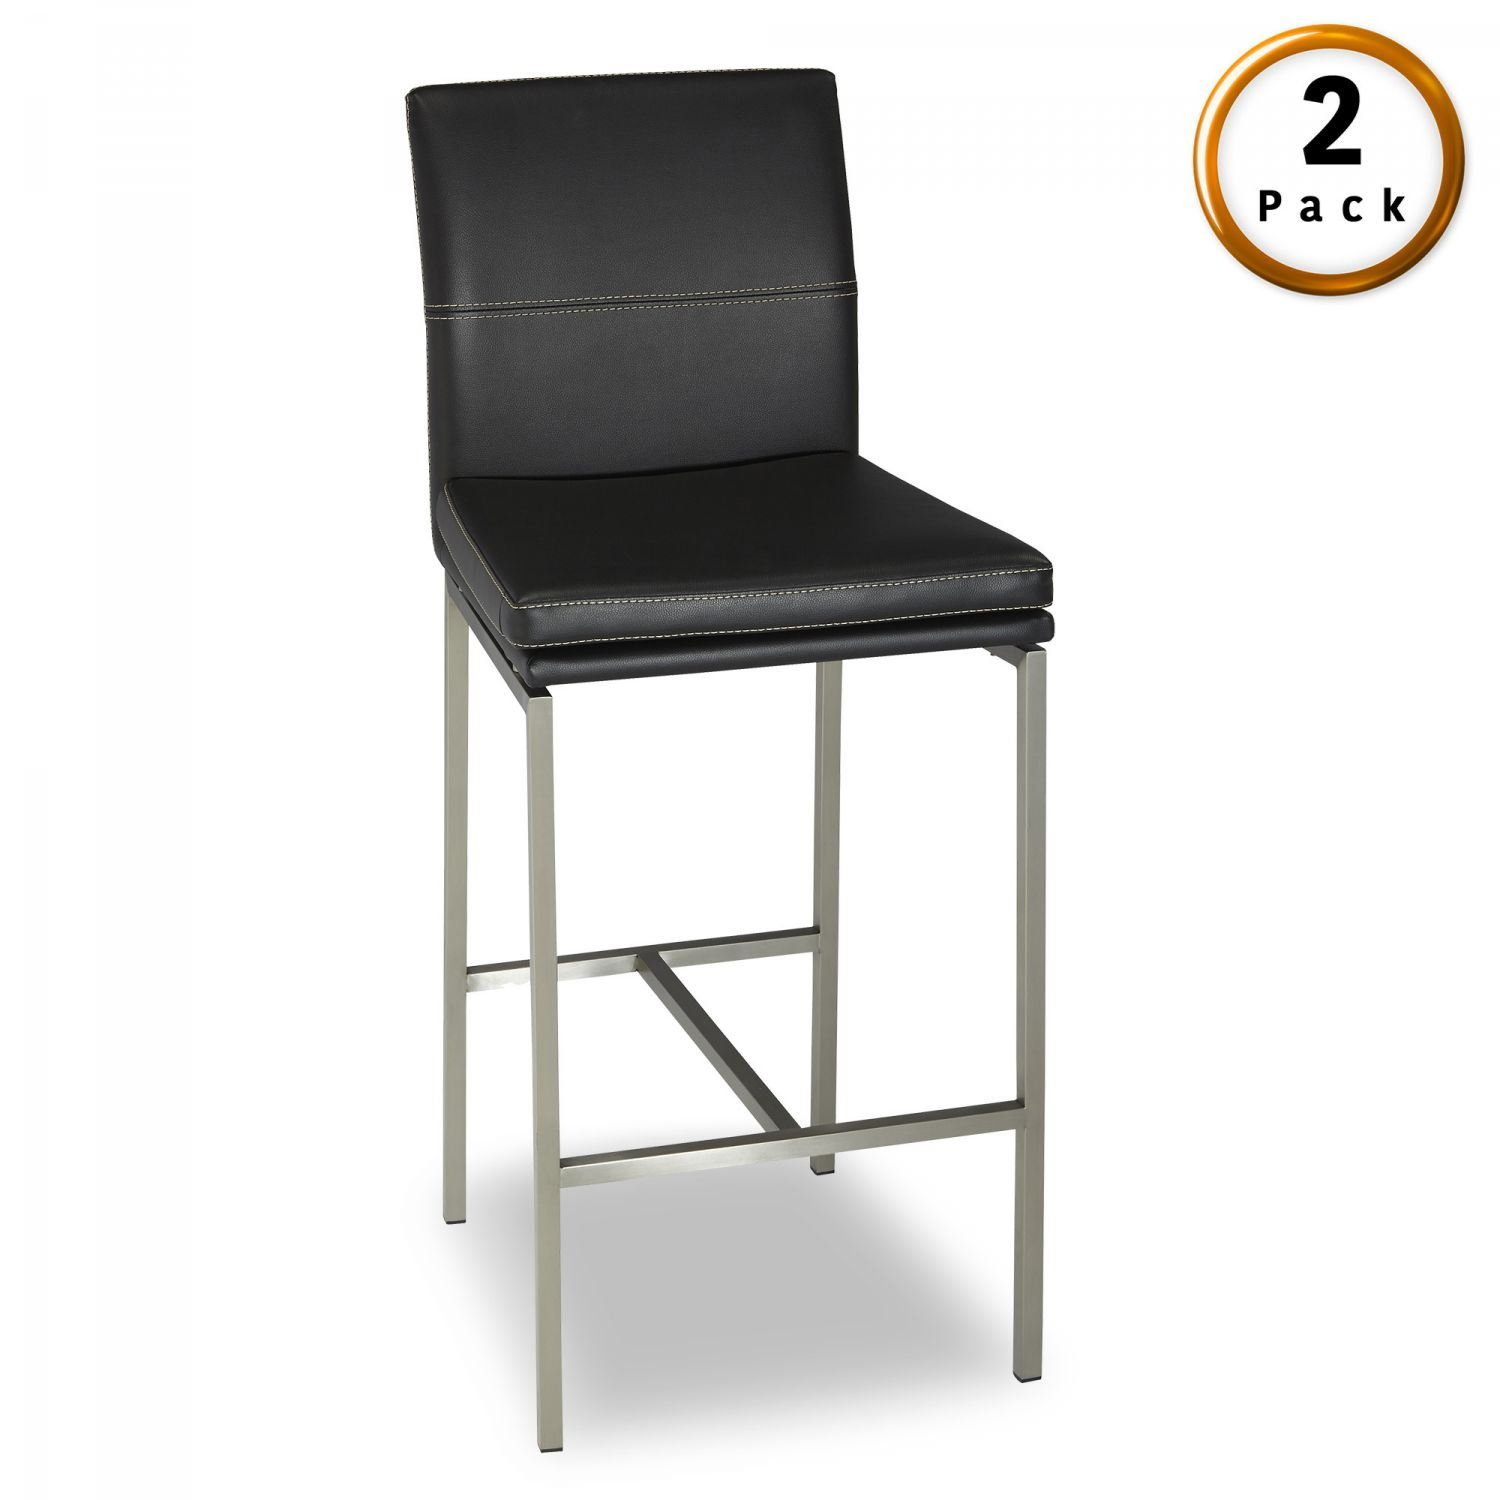 Phoenix Metal Bar Stool 2 Pack D C1x1602 Fashion Bed